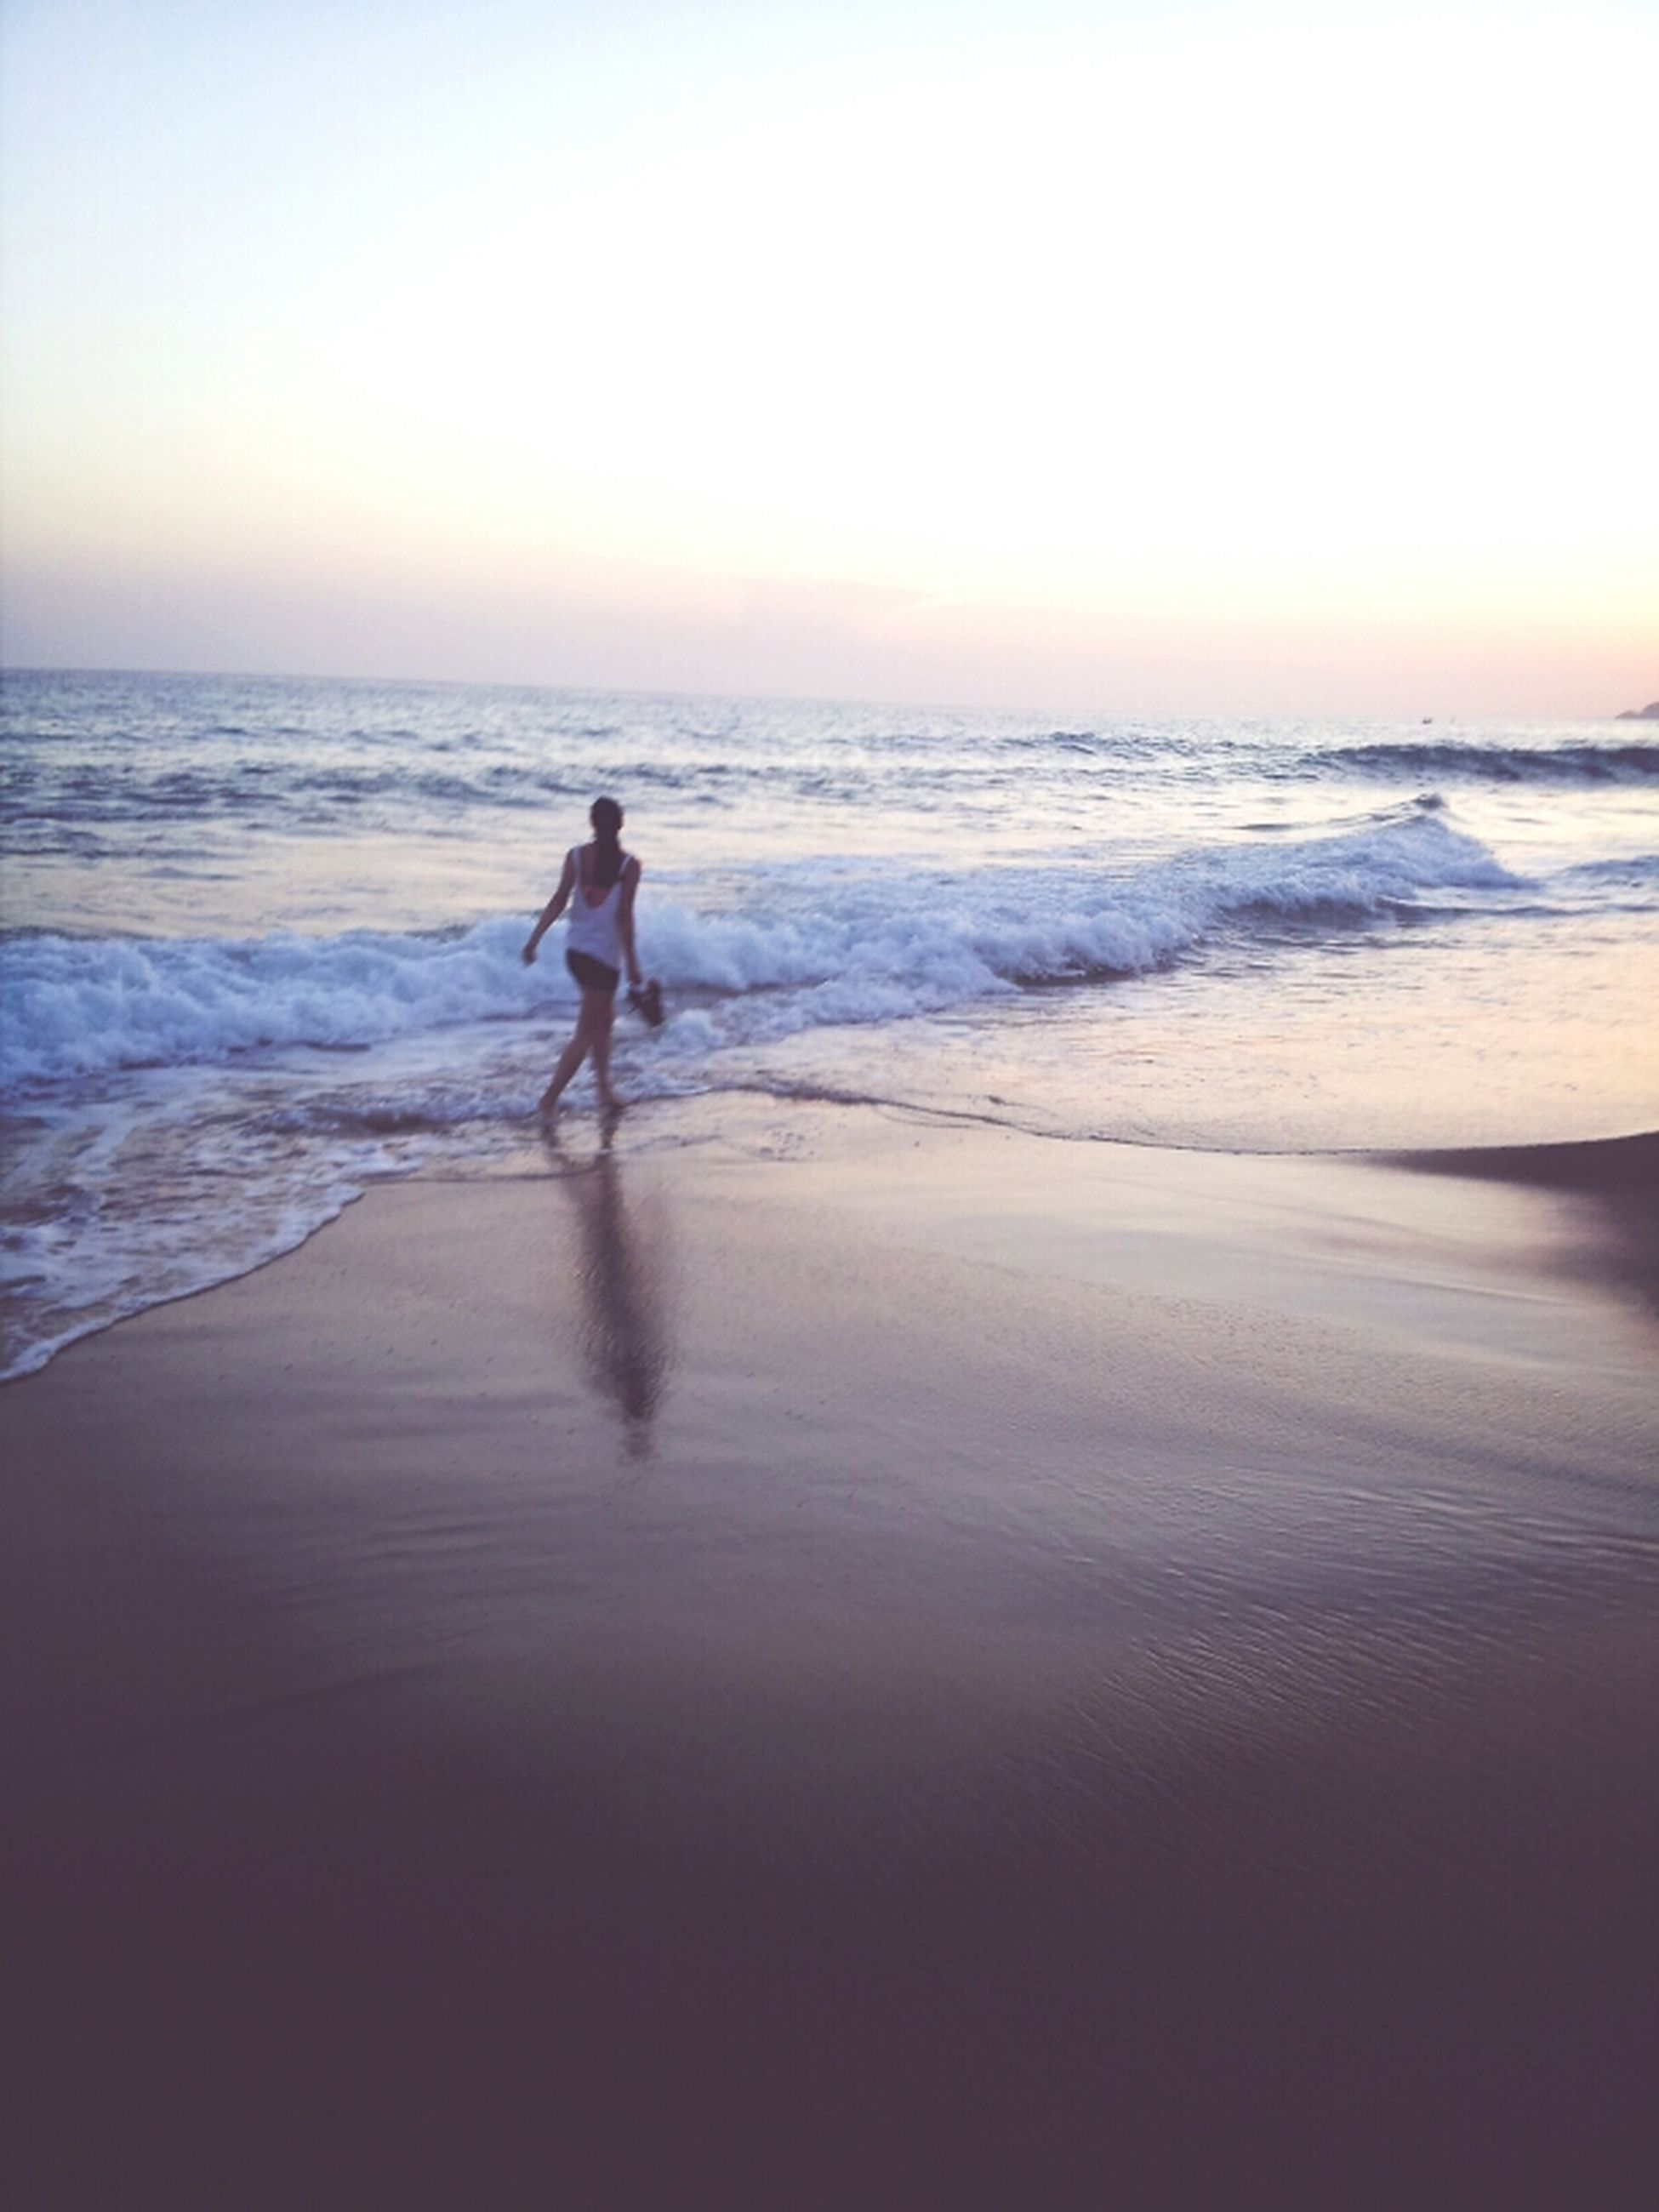 sea, beach, horizon over water, water, shore, full length, silhouette, sand, wave, leisure activity, lifestyles, sunset, scenics, vacations, standing, tranquil scene, walking, beauty in nature